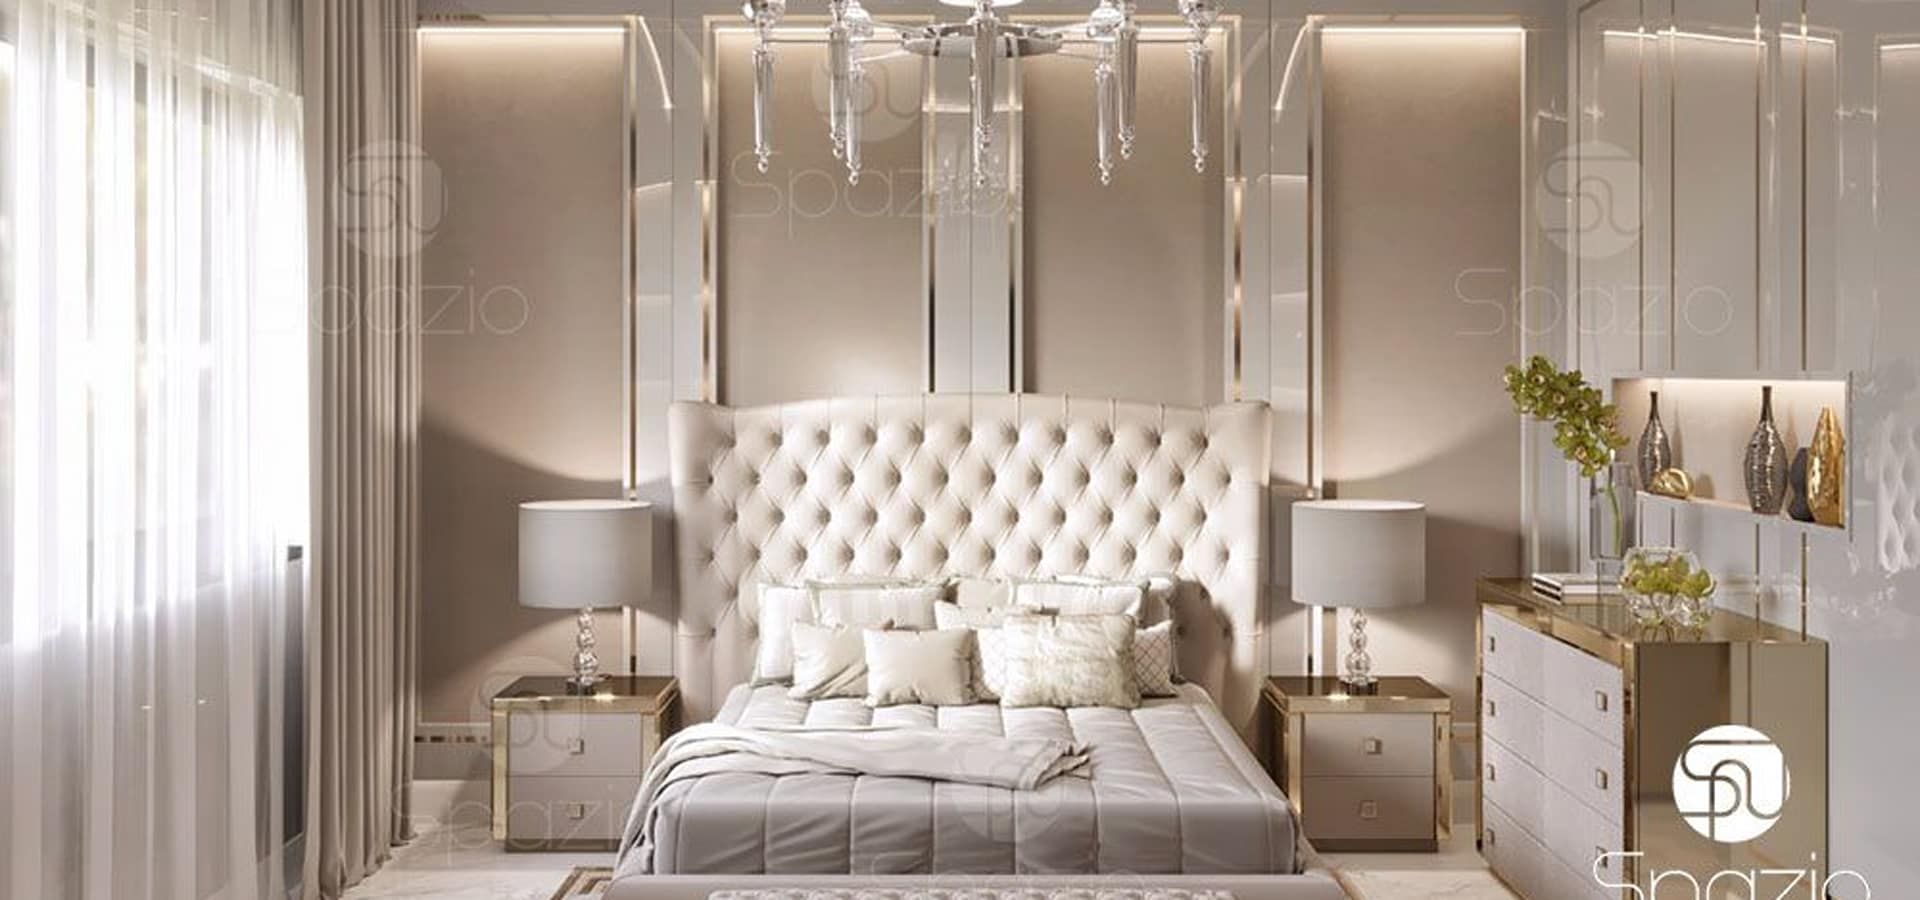 Luxury Modern Master Bedroom Interior Design And Decor In Dubai The within Interior Design Ideas For Bedrooms Modern